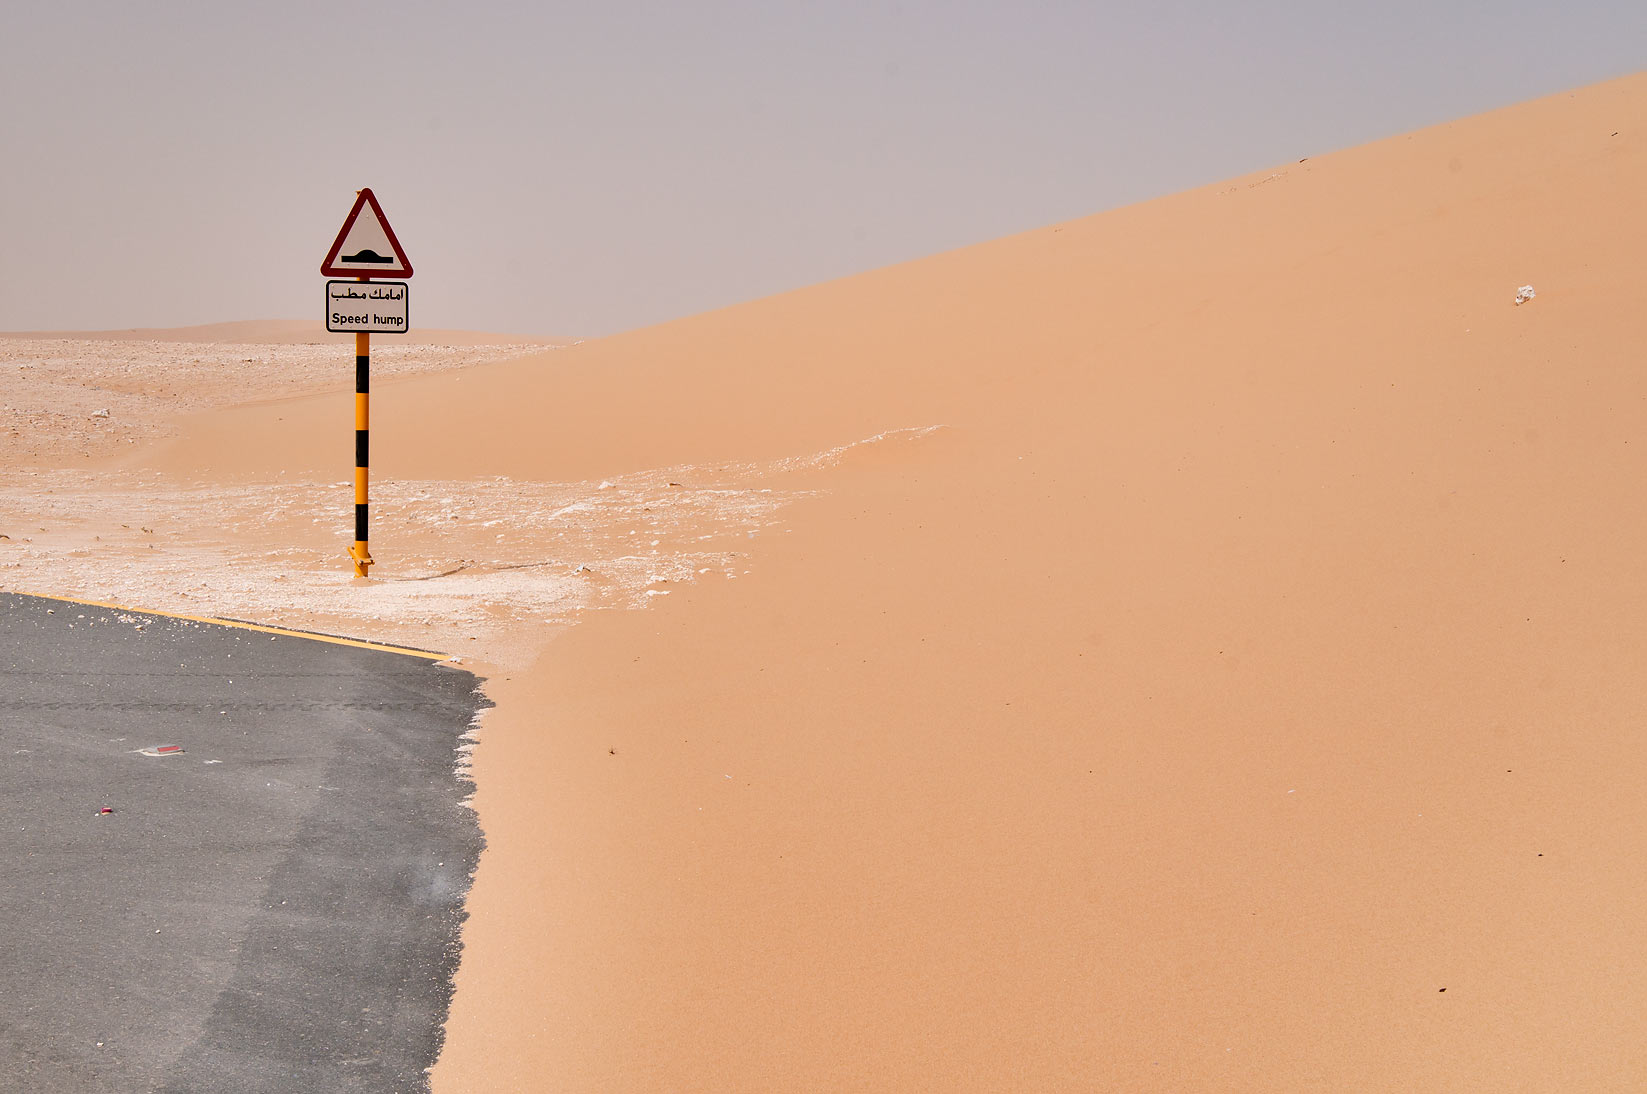 Speed Bump road sign near Singing Sand Dunes near Mesaieed. Qatar